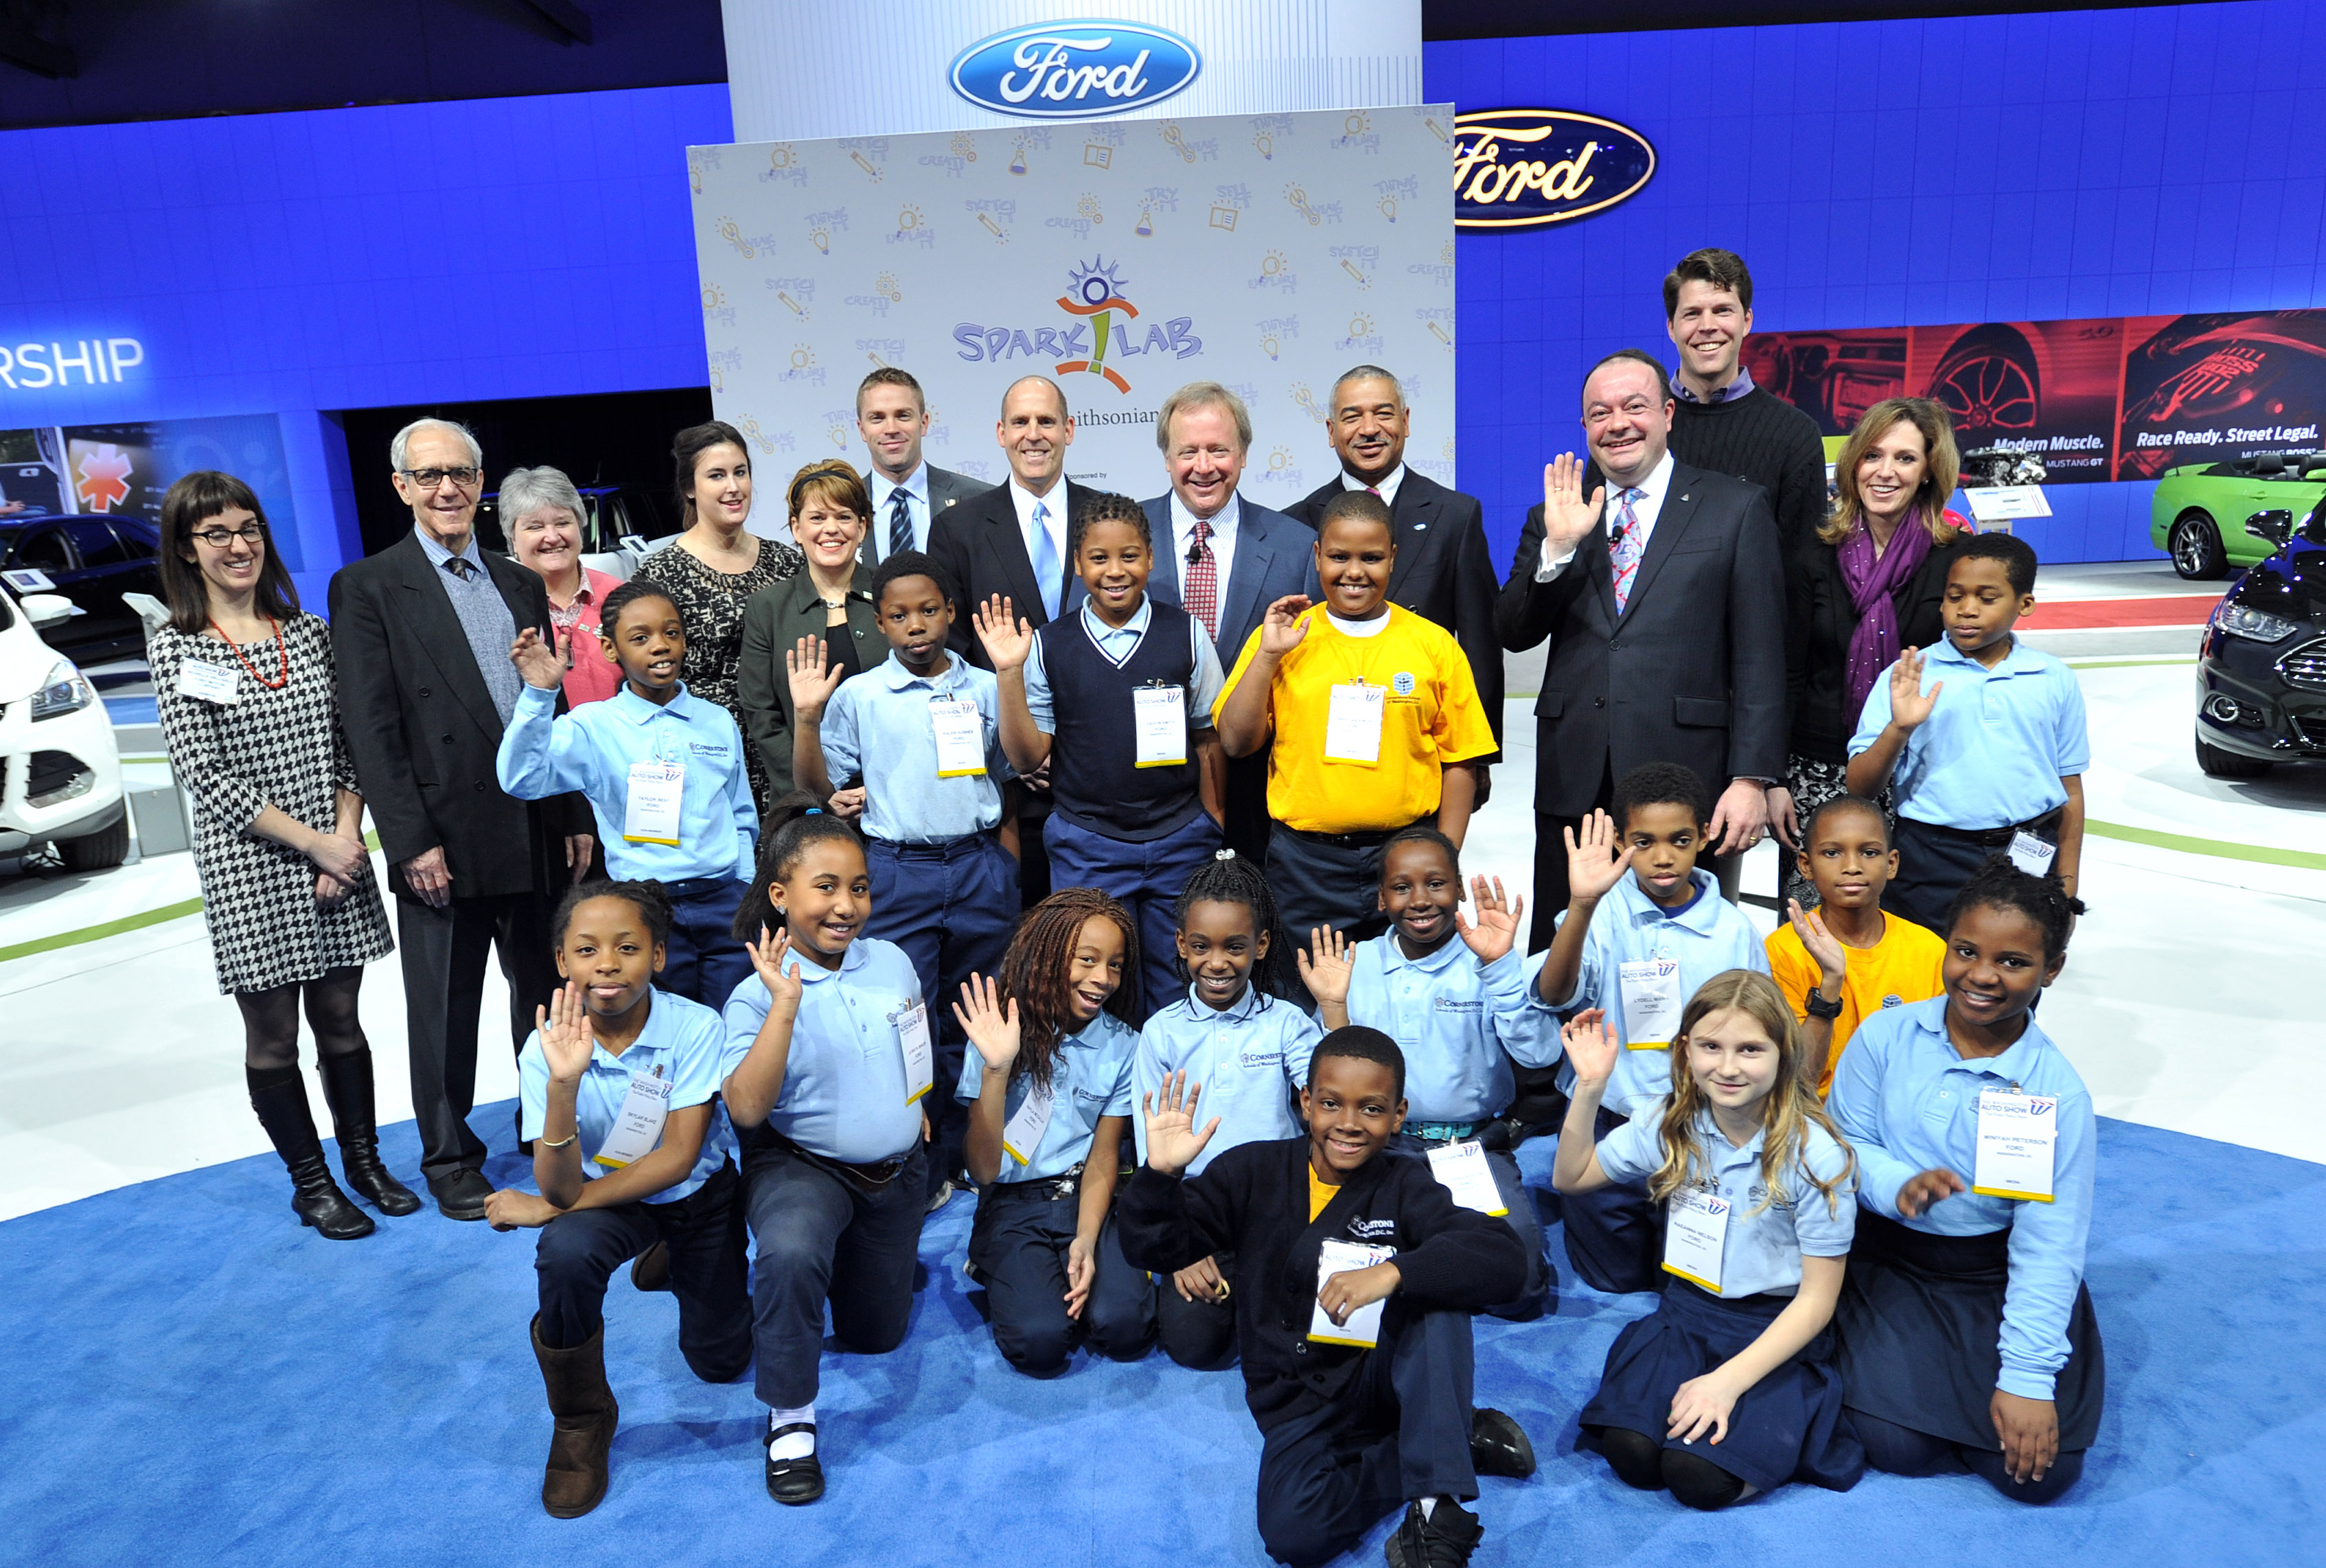 Ford executives with representatives of the Smithsonian, and fourth grade students from Cornerstone Schools of Washington D.C.